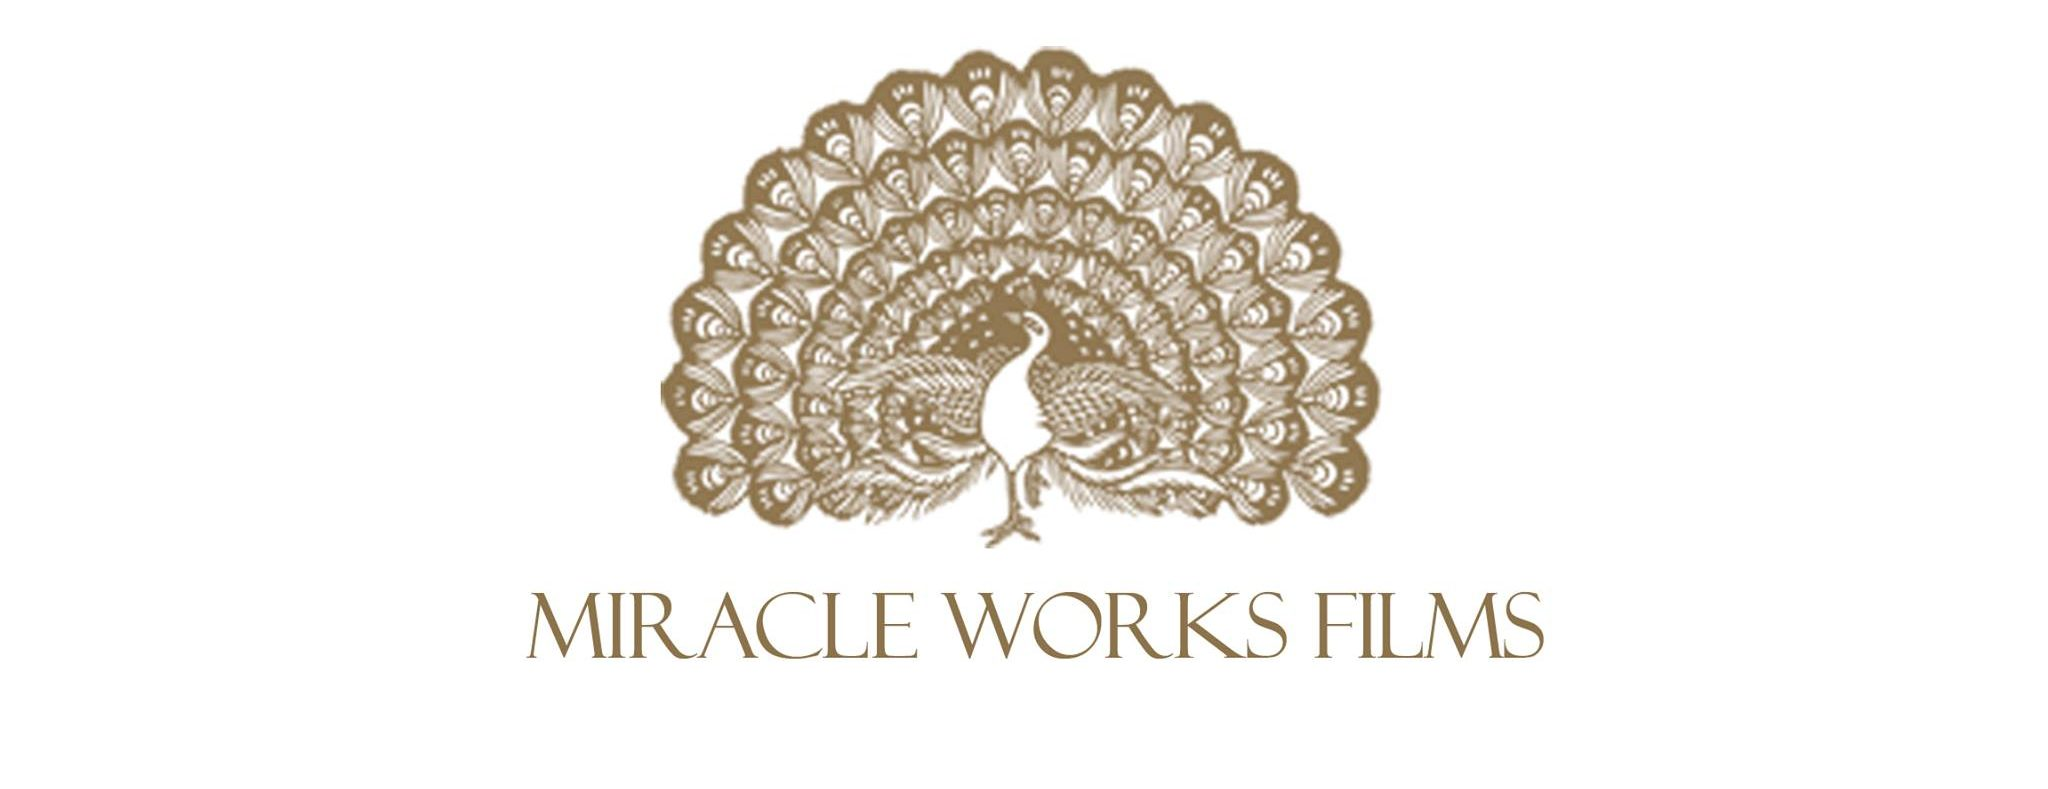 Miracle Works Films